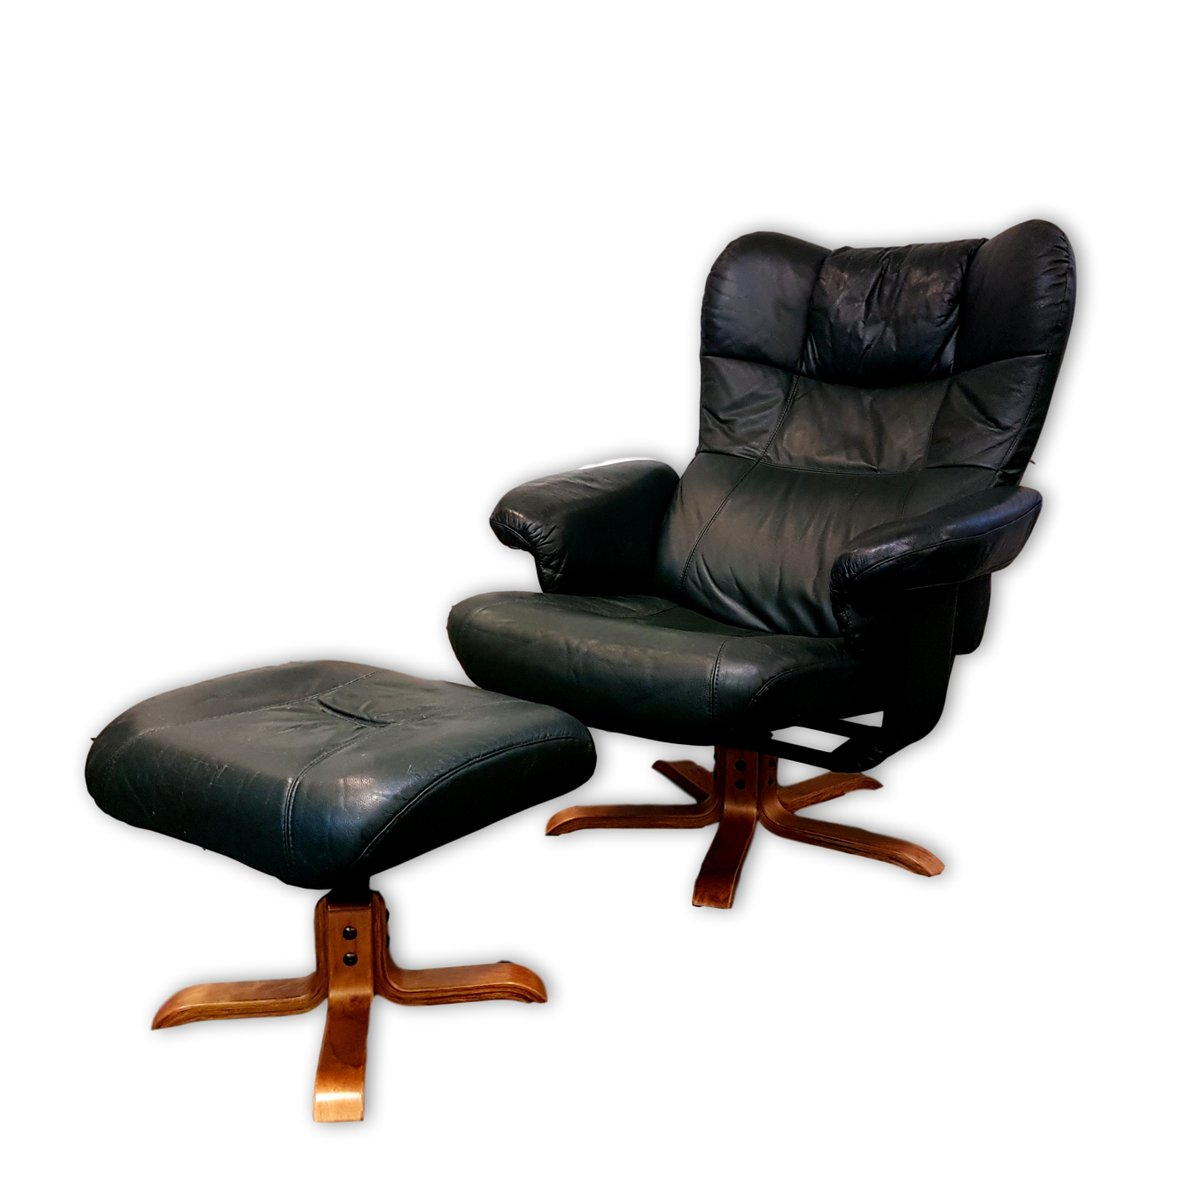 Green Leather Reclining Chair U0026 Footstool From Unico, 1980s